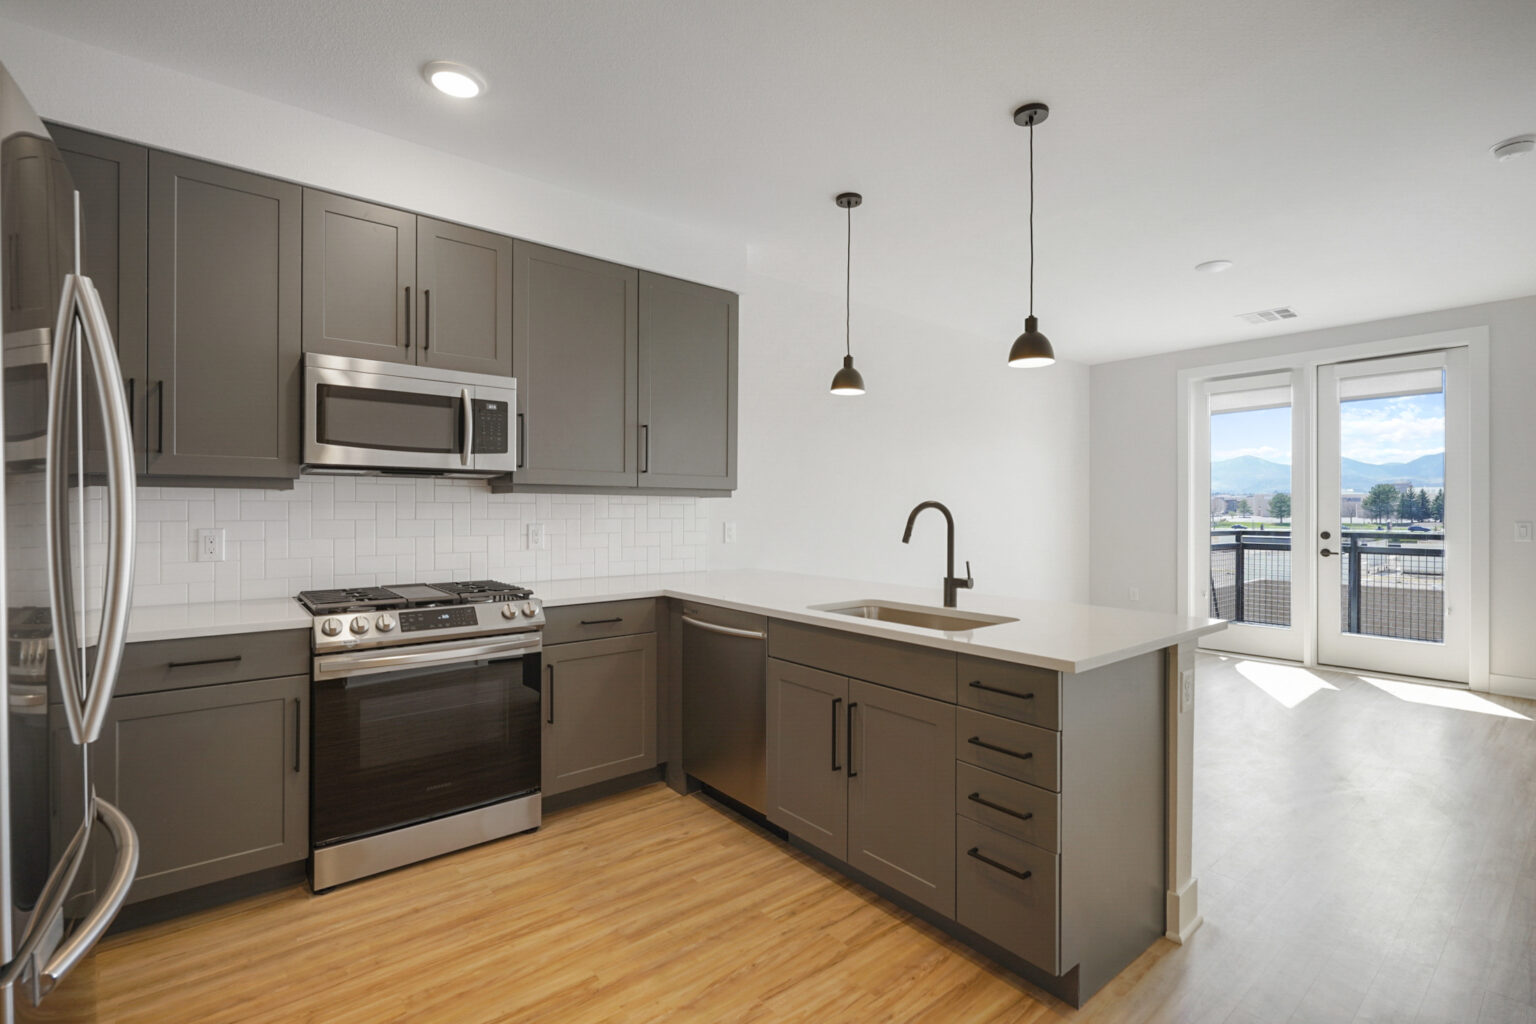 kitchen and dining/living space